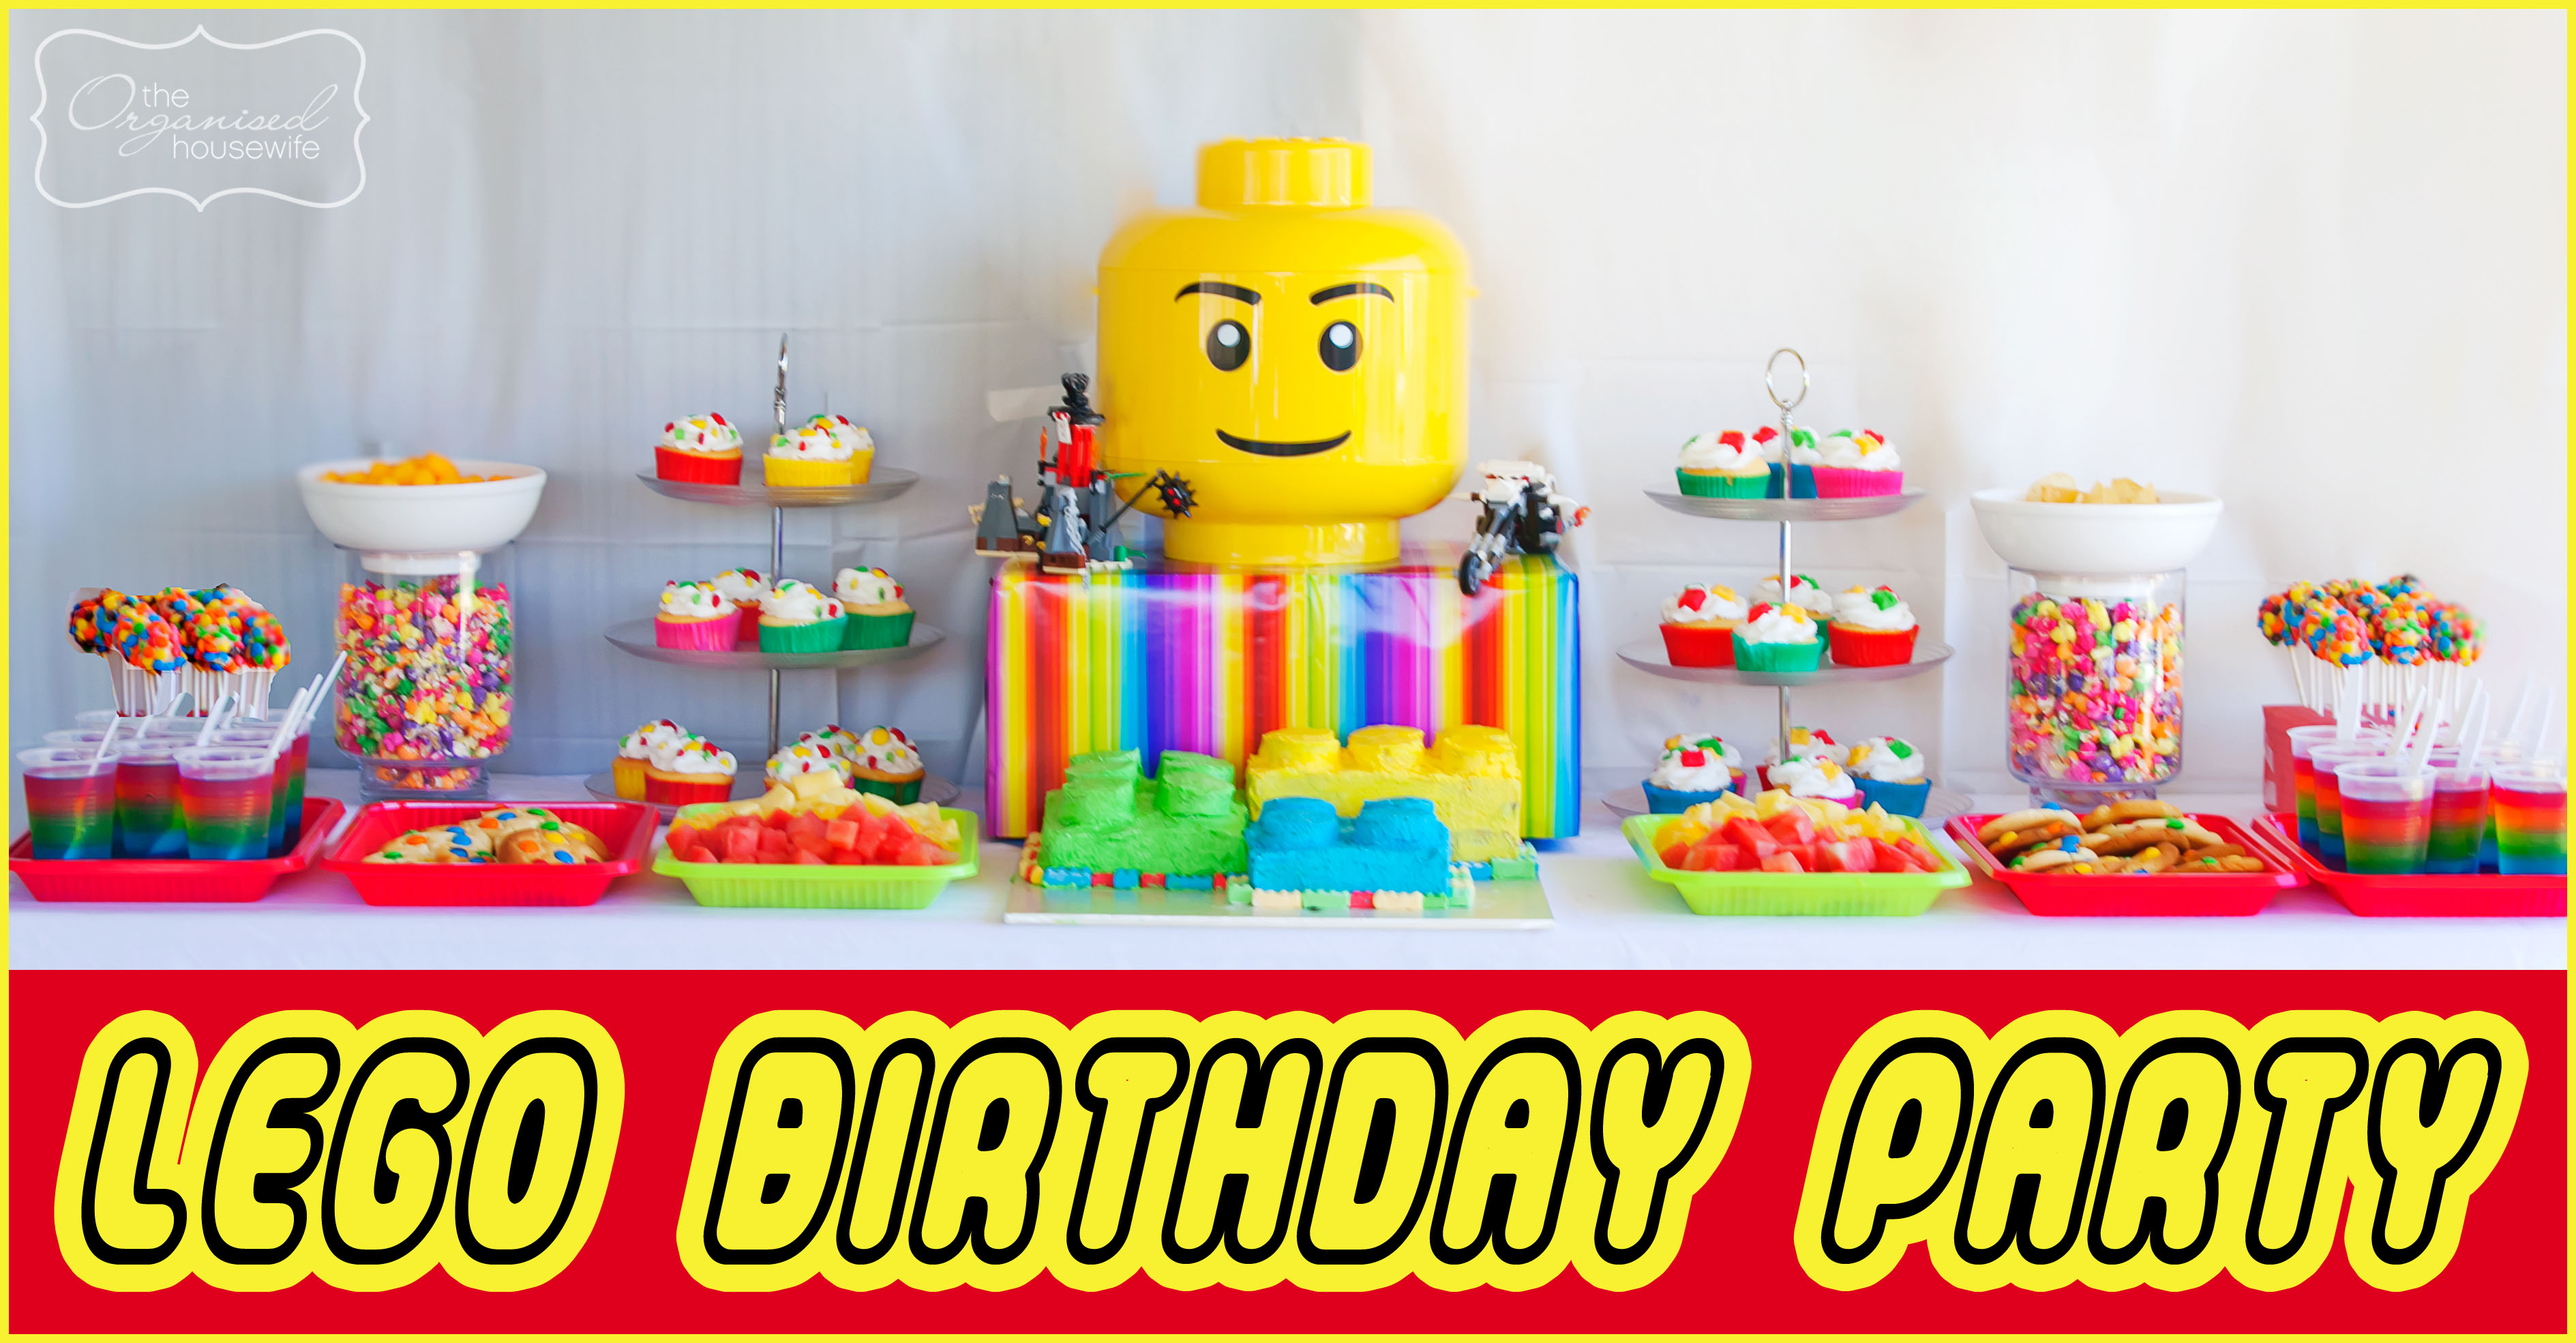 2 Parties In 1 Day Part 4 The Lego Birthday Party